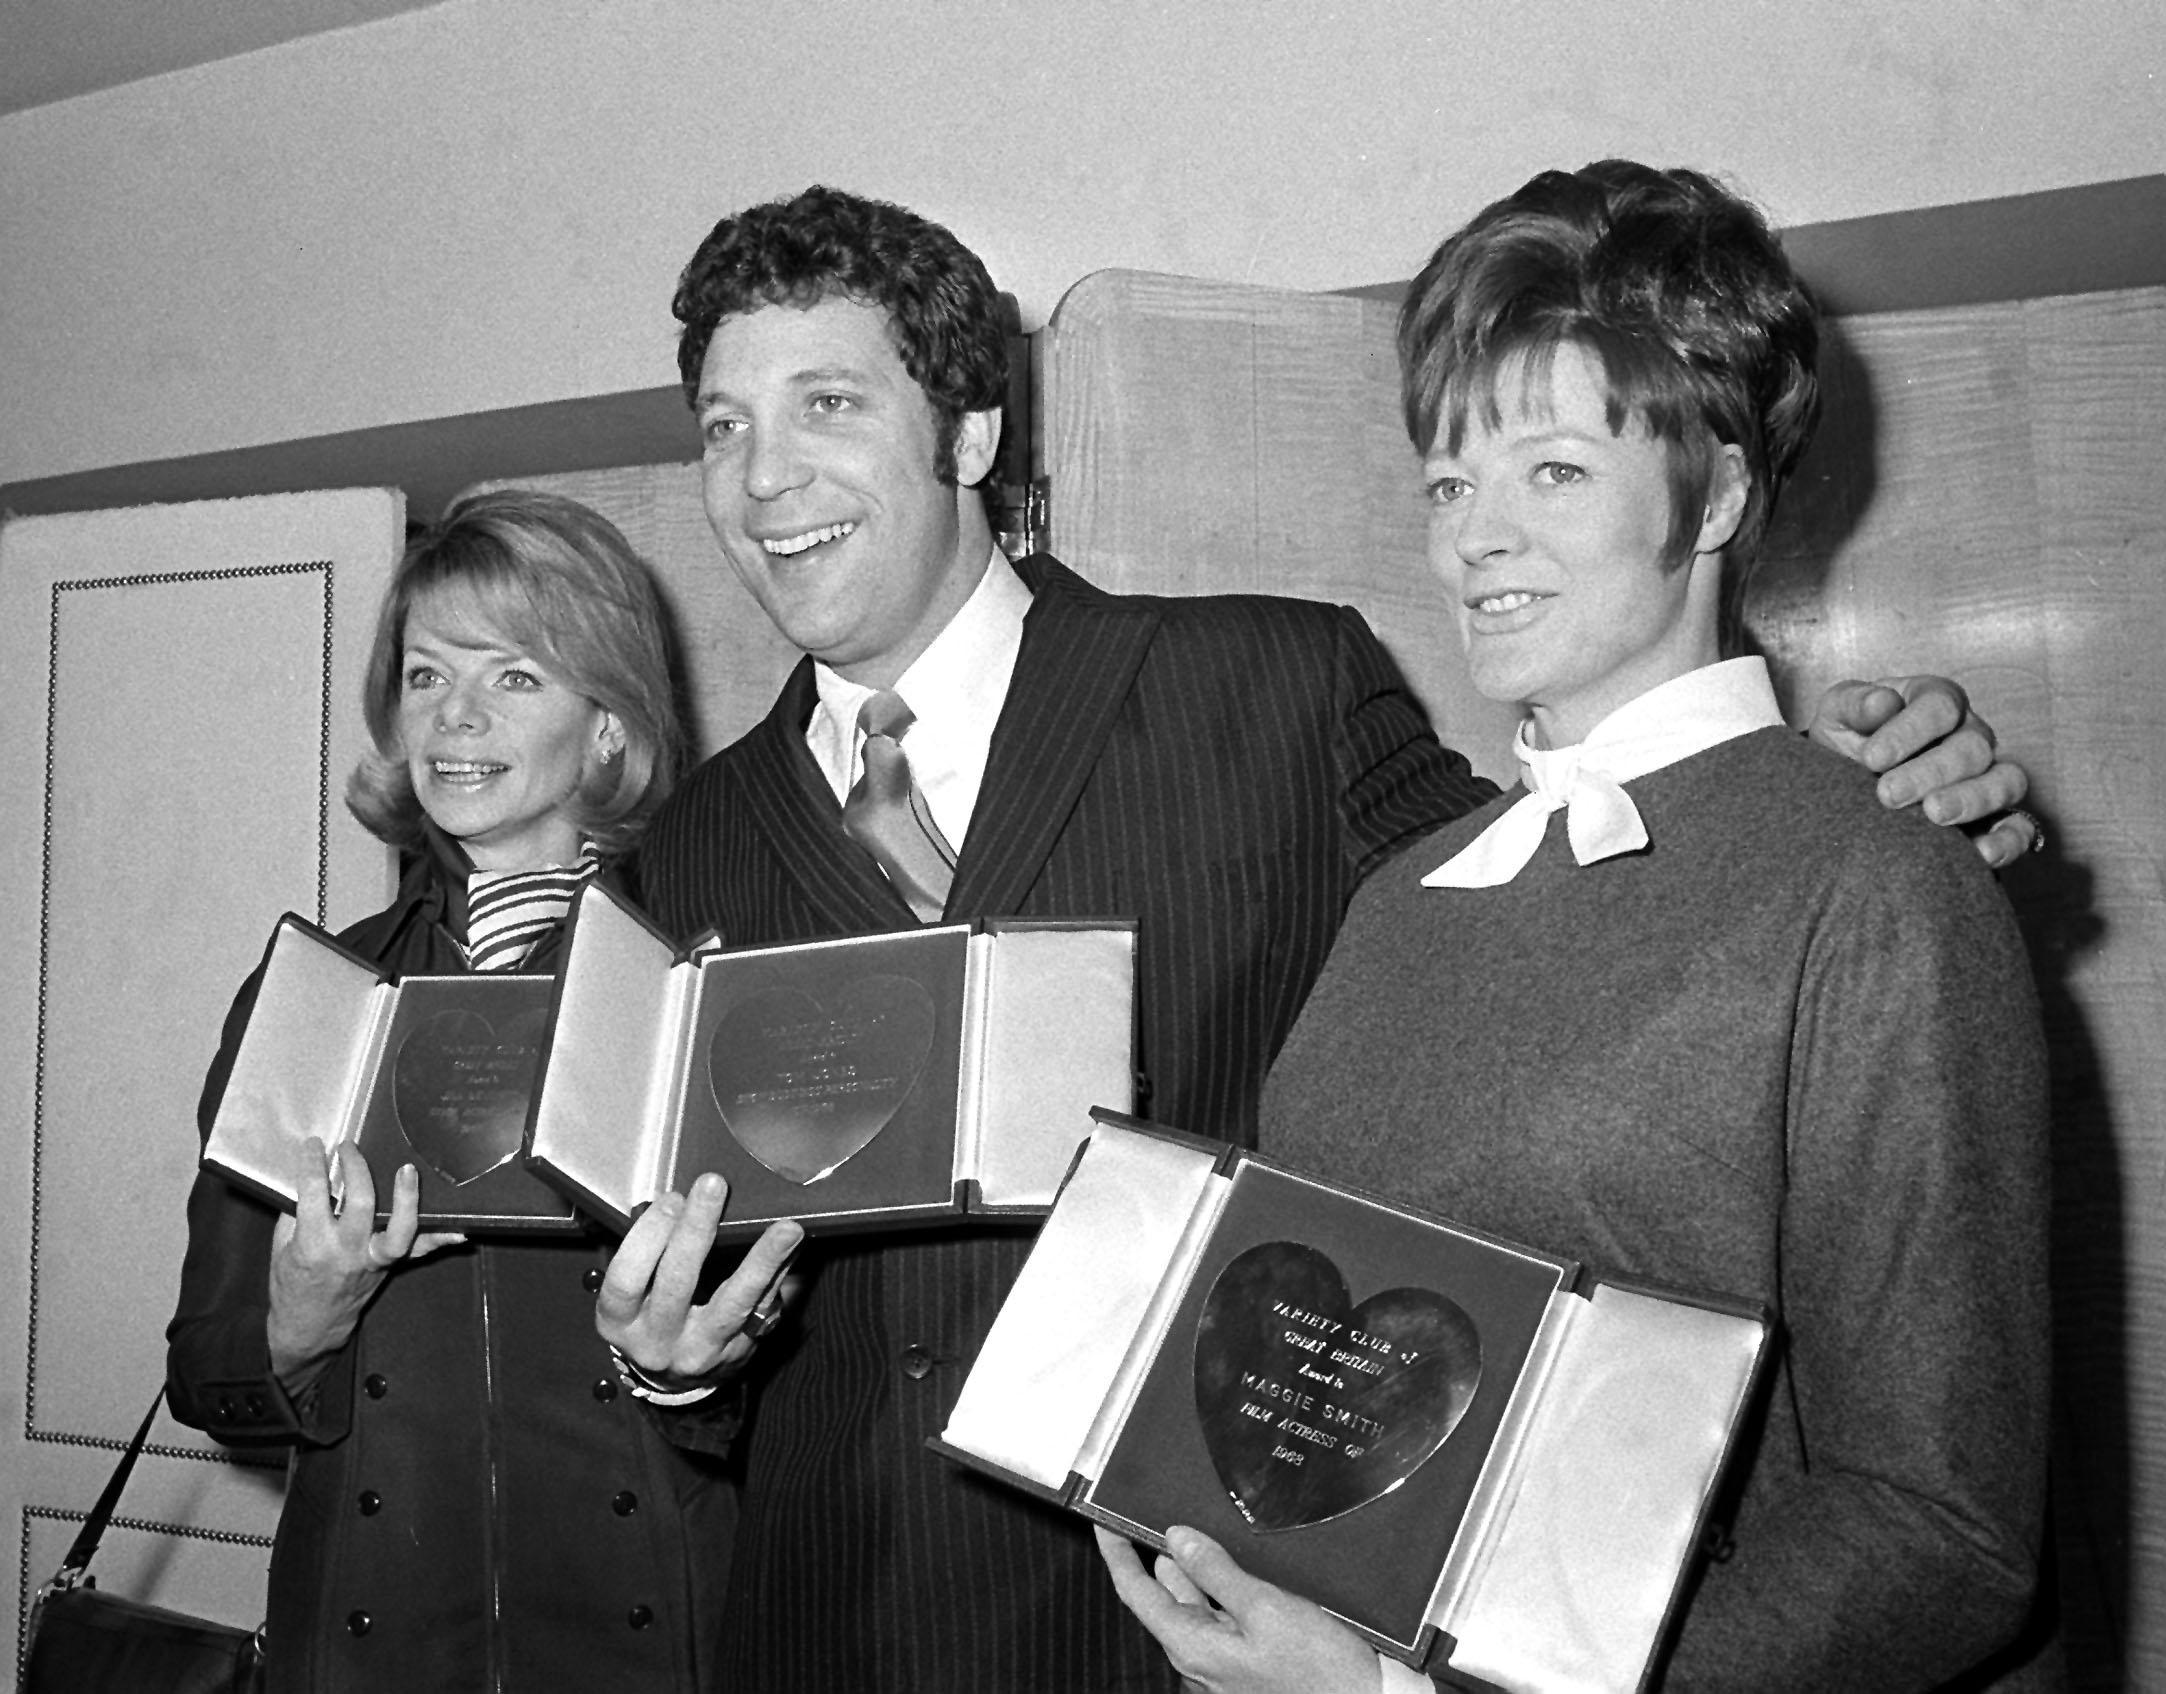 Jill Bennett, Tom Jones and Maggie Smith (left to right) with their mounted and inscribed silver hearts show business awards presented to them by the Variety Club of Great Britain at the Savoy Hotel, London. 11/03/1969